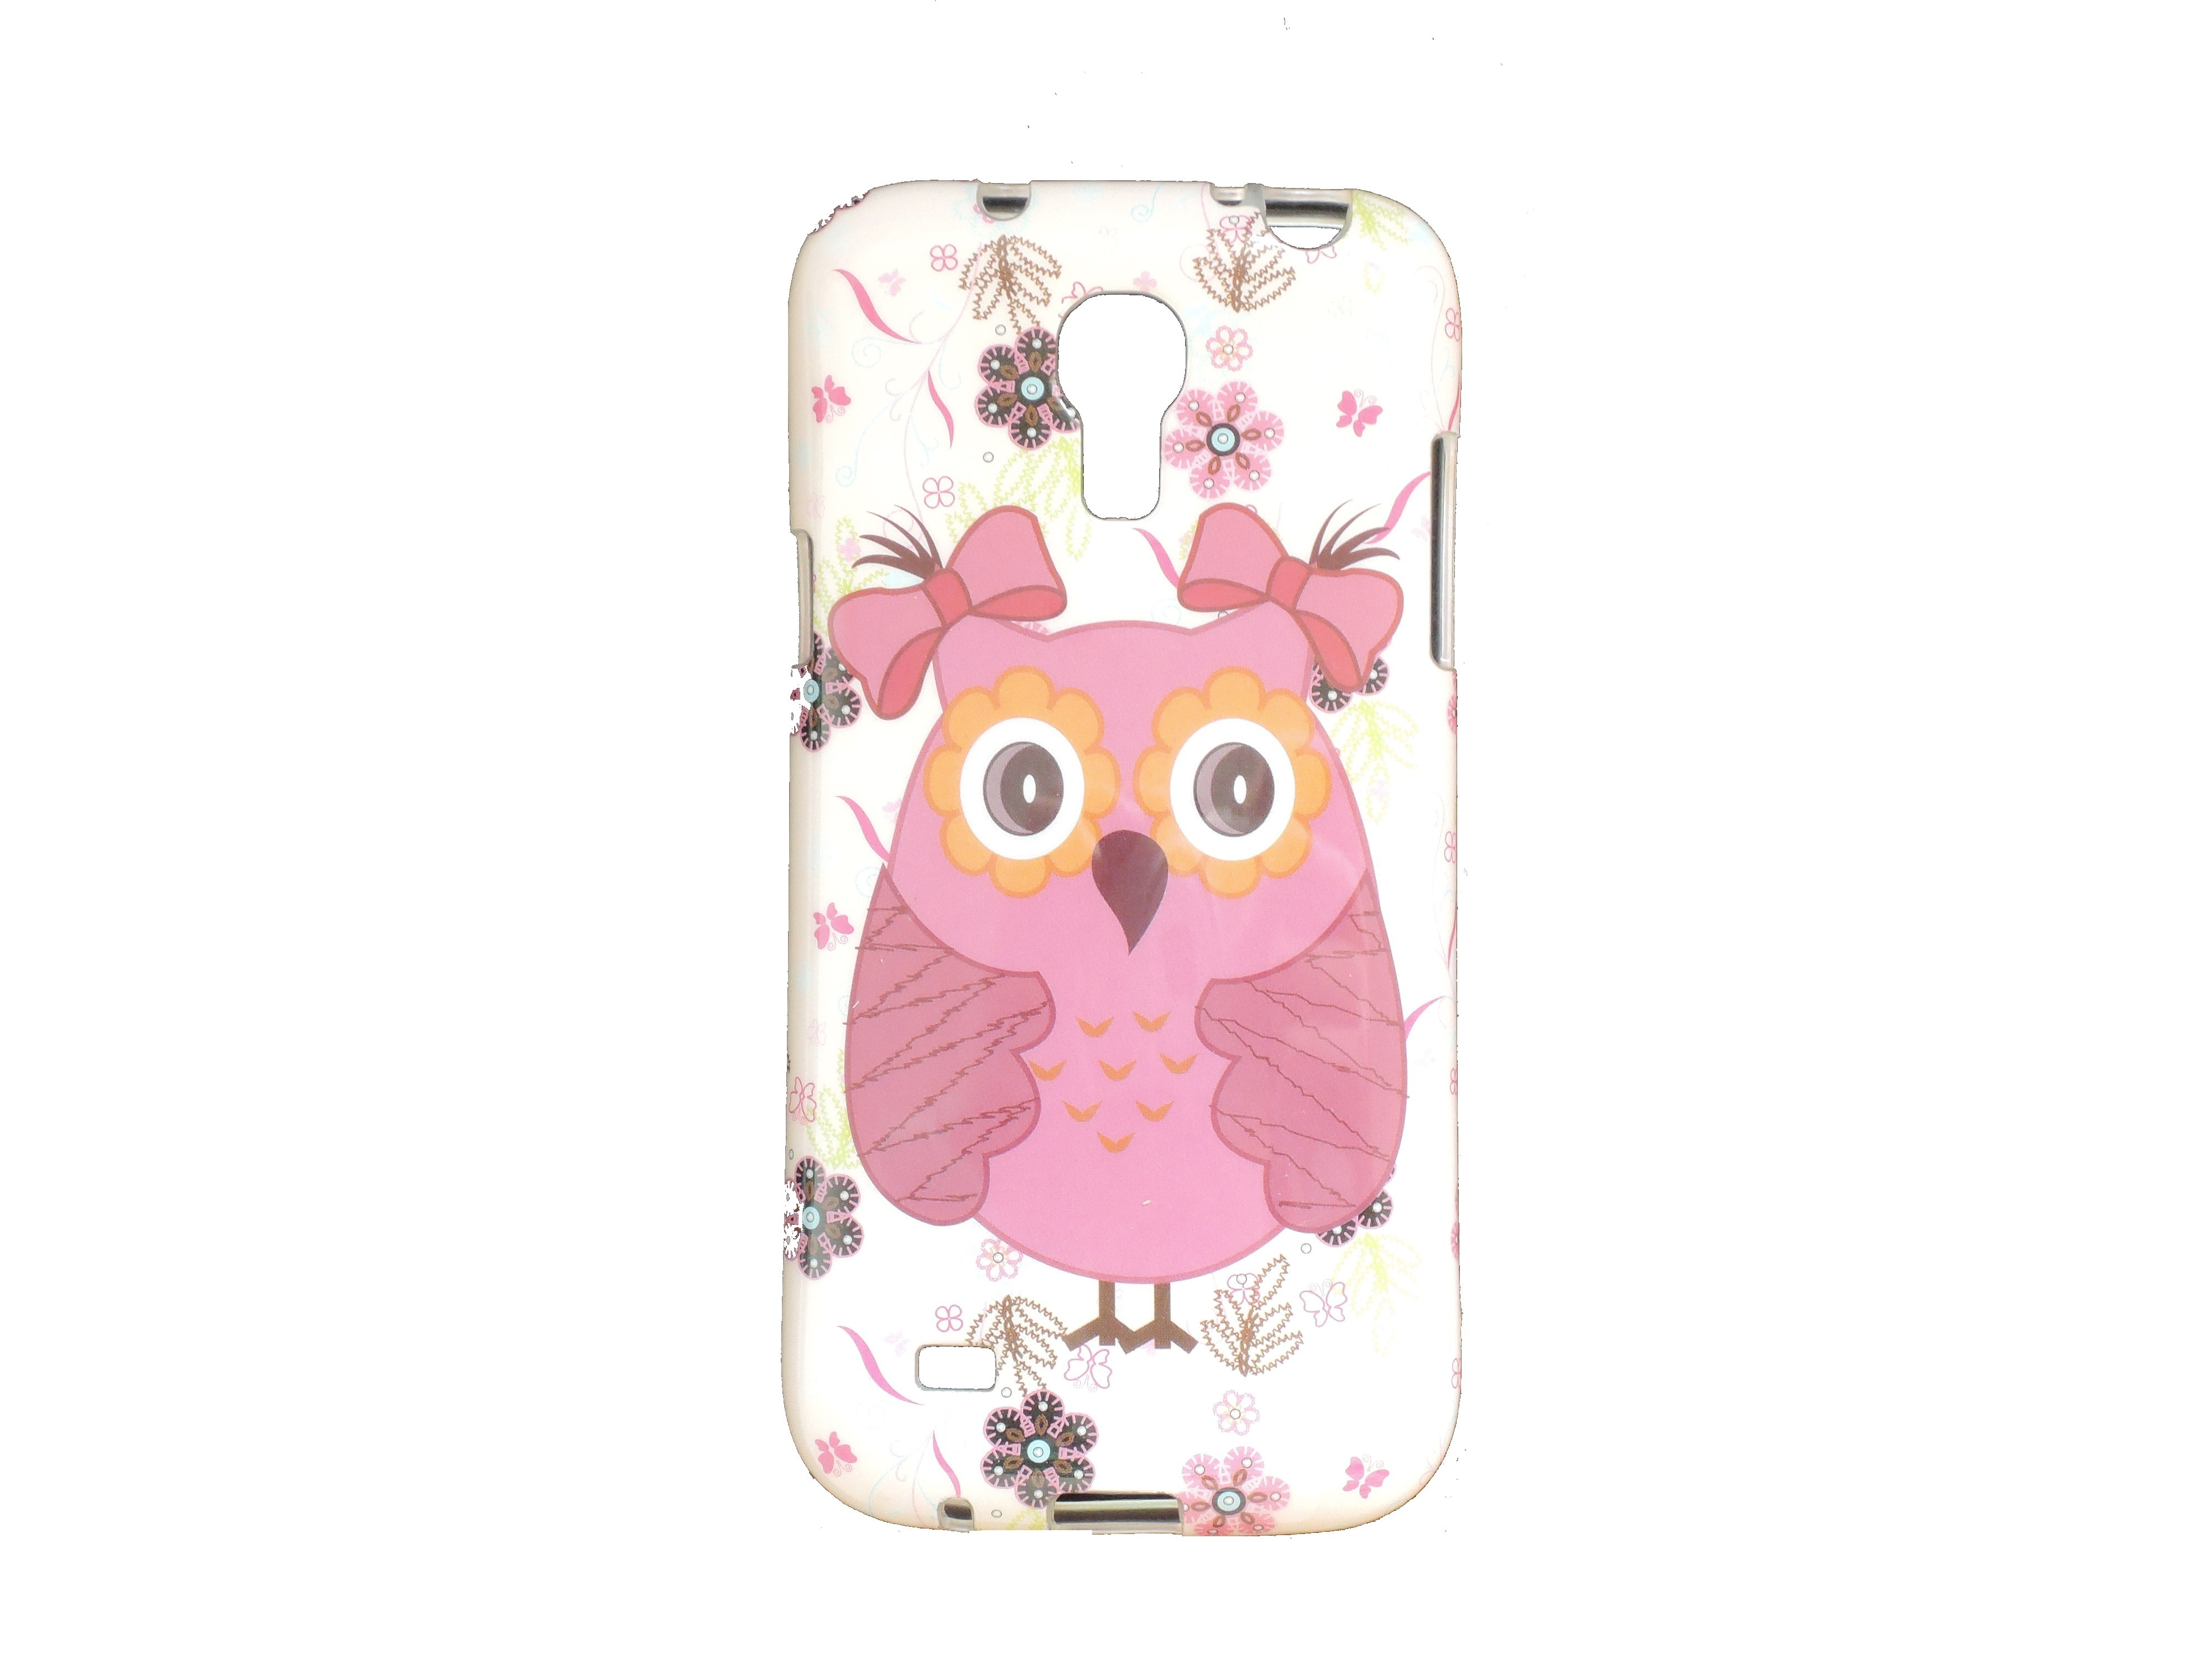 coque samsung s7 chouette